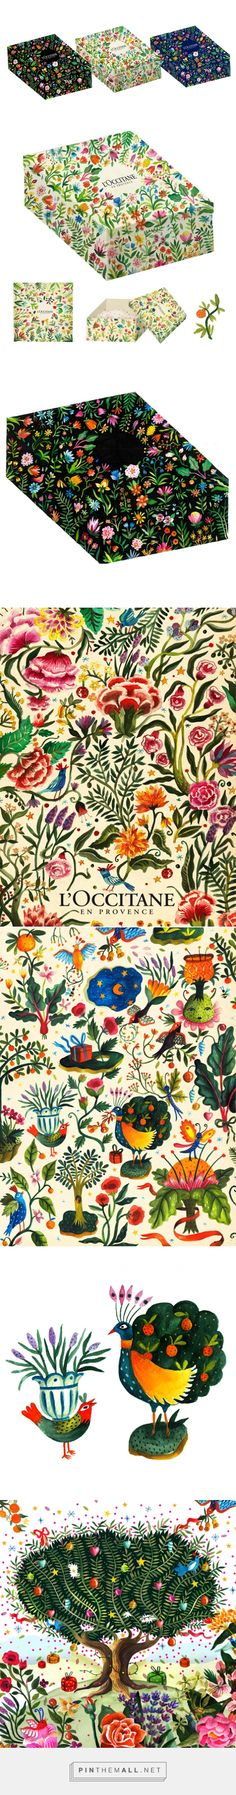 Sketches for L'Occitane on Behance created Aitch curated by Packaging Diva PD. I love these packaging design sketches. Too bad we won't get to see them for real : (